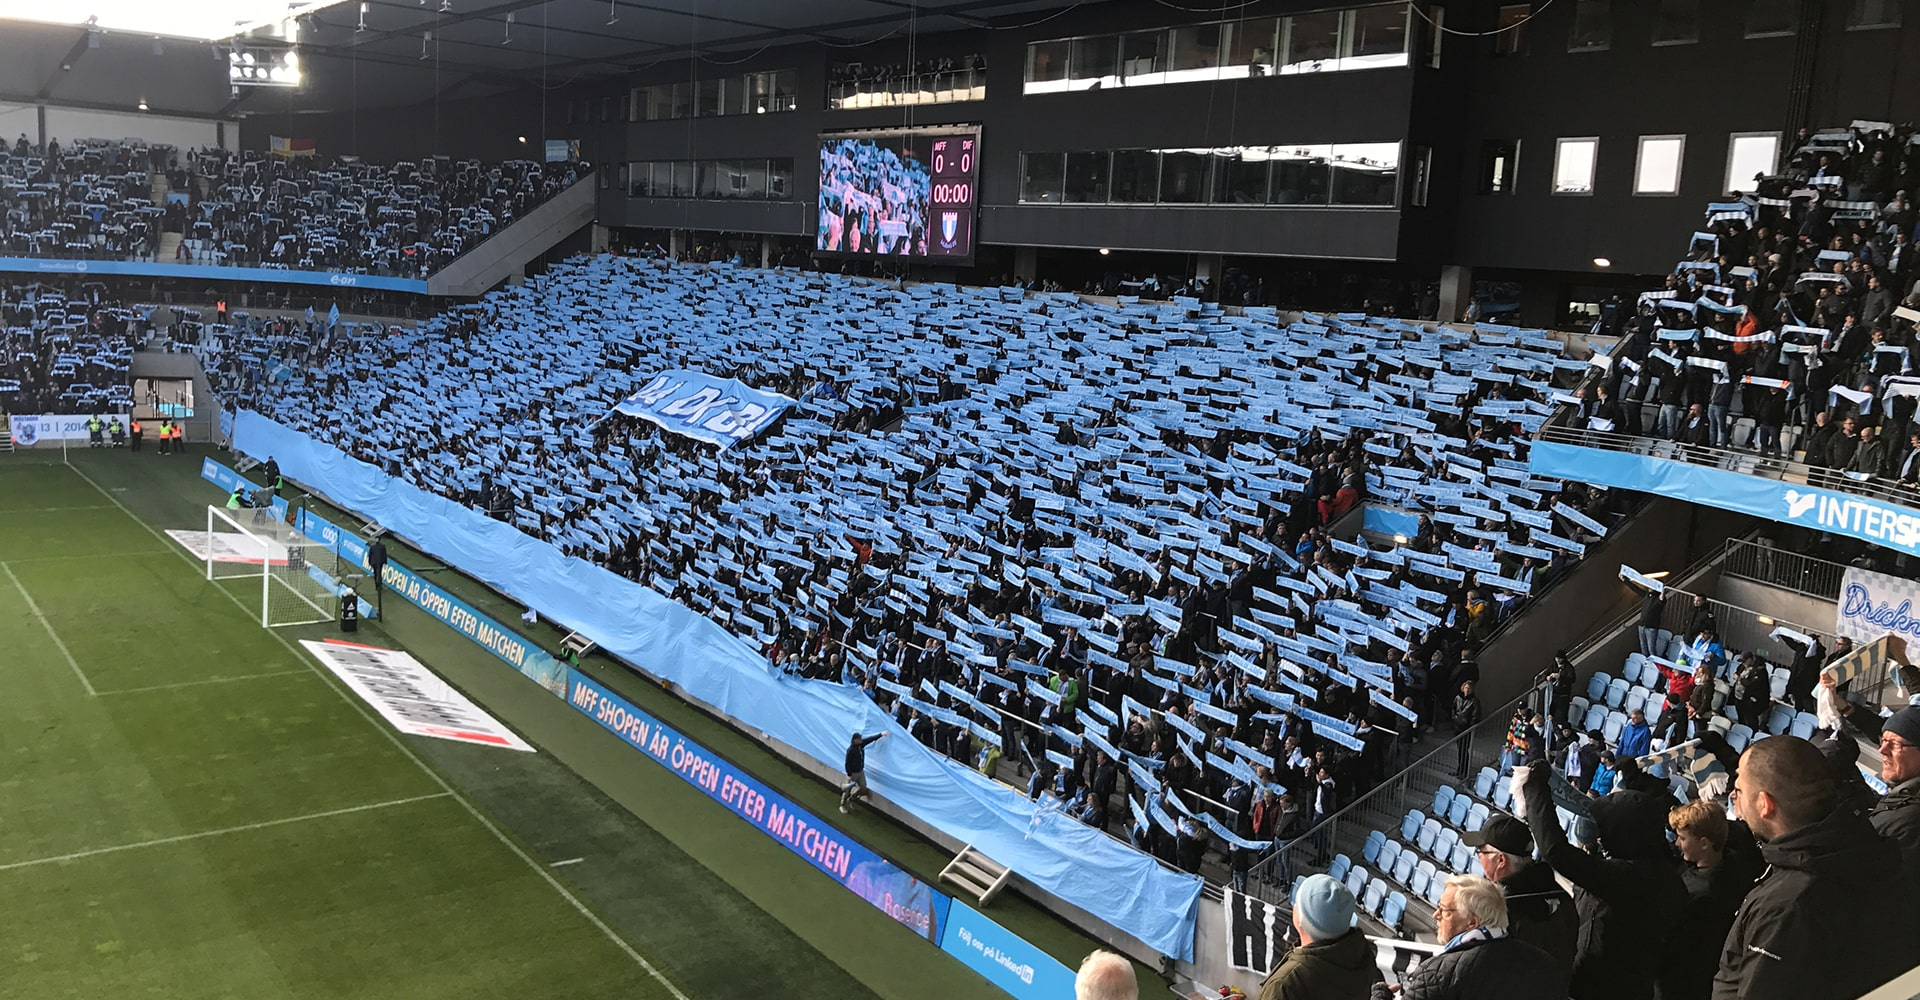 Malmö FF football supporters during a game